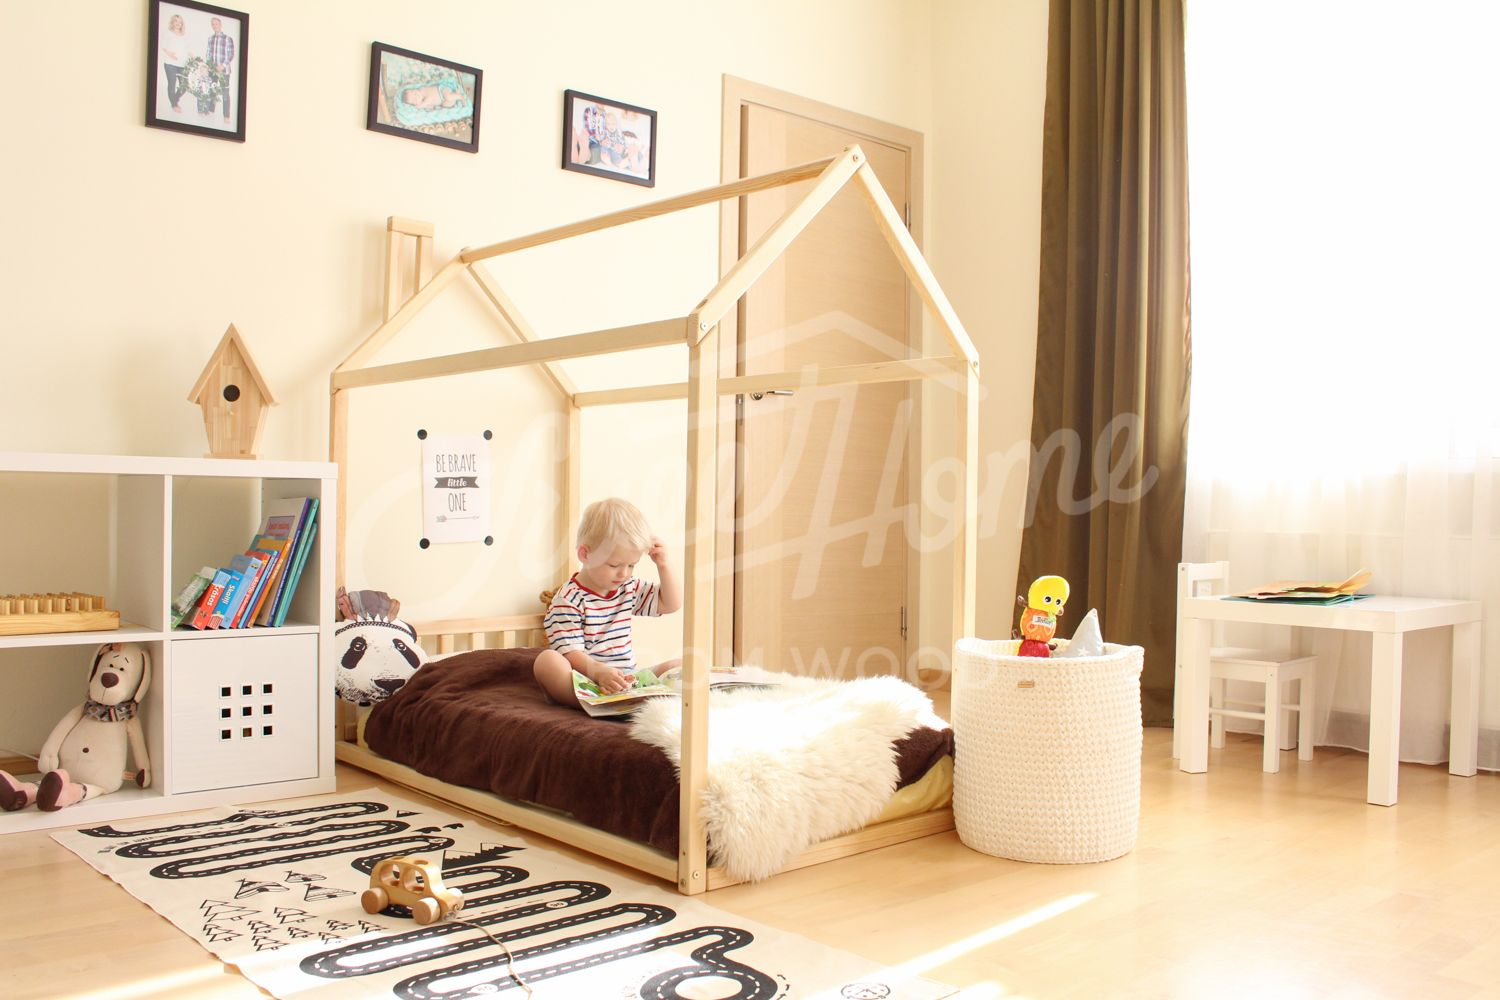 House Bed Children Home Toddler Floor Montessori Nursery Frame Original Baby Design HEADBOARD